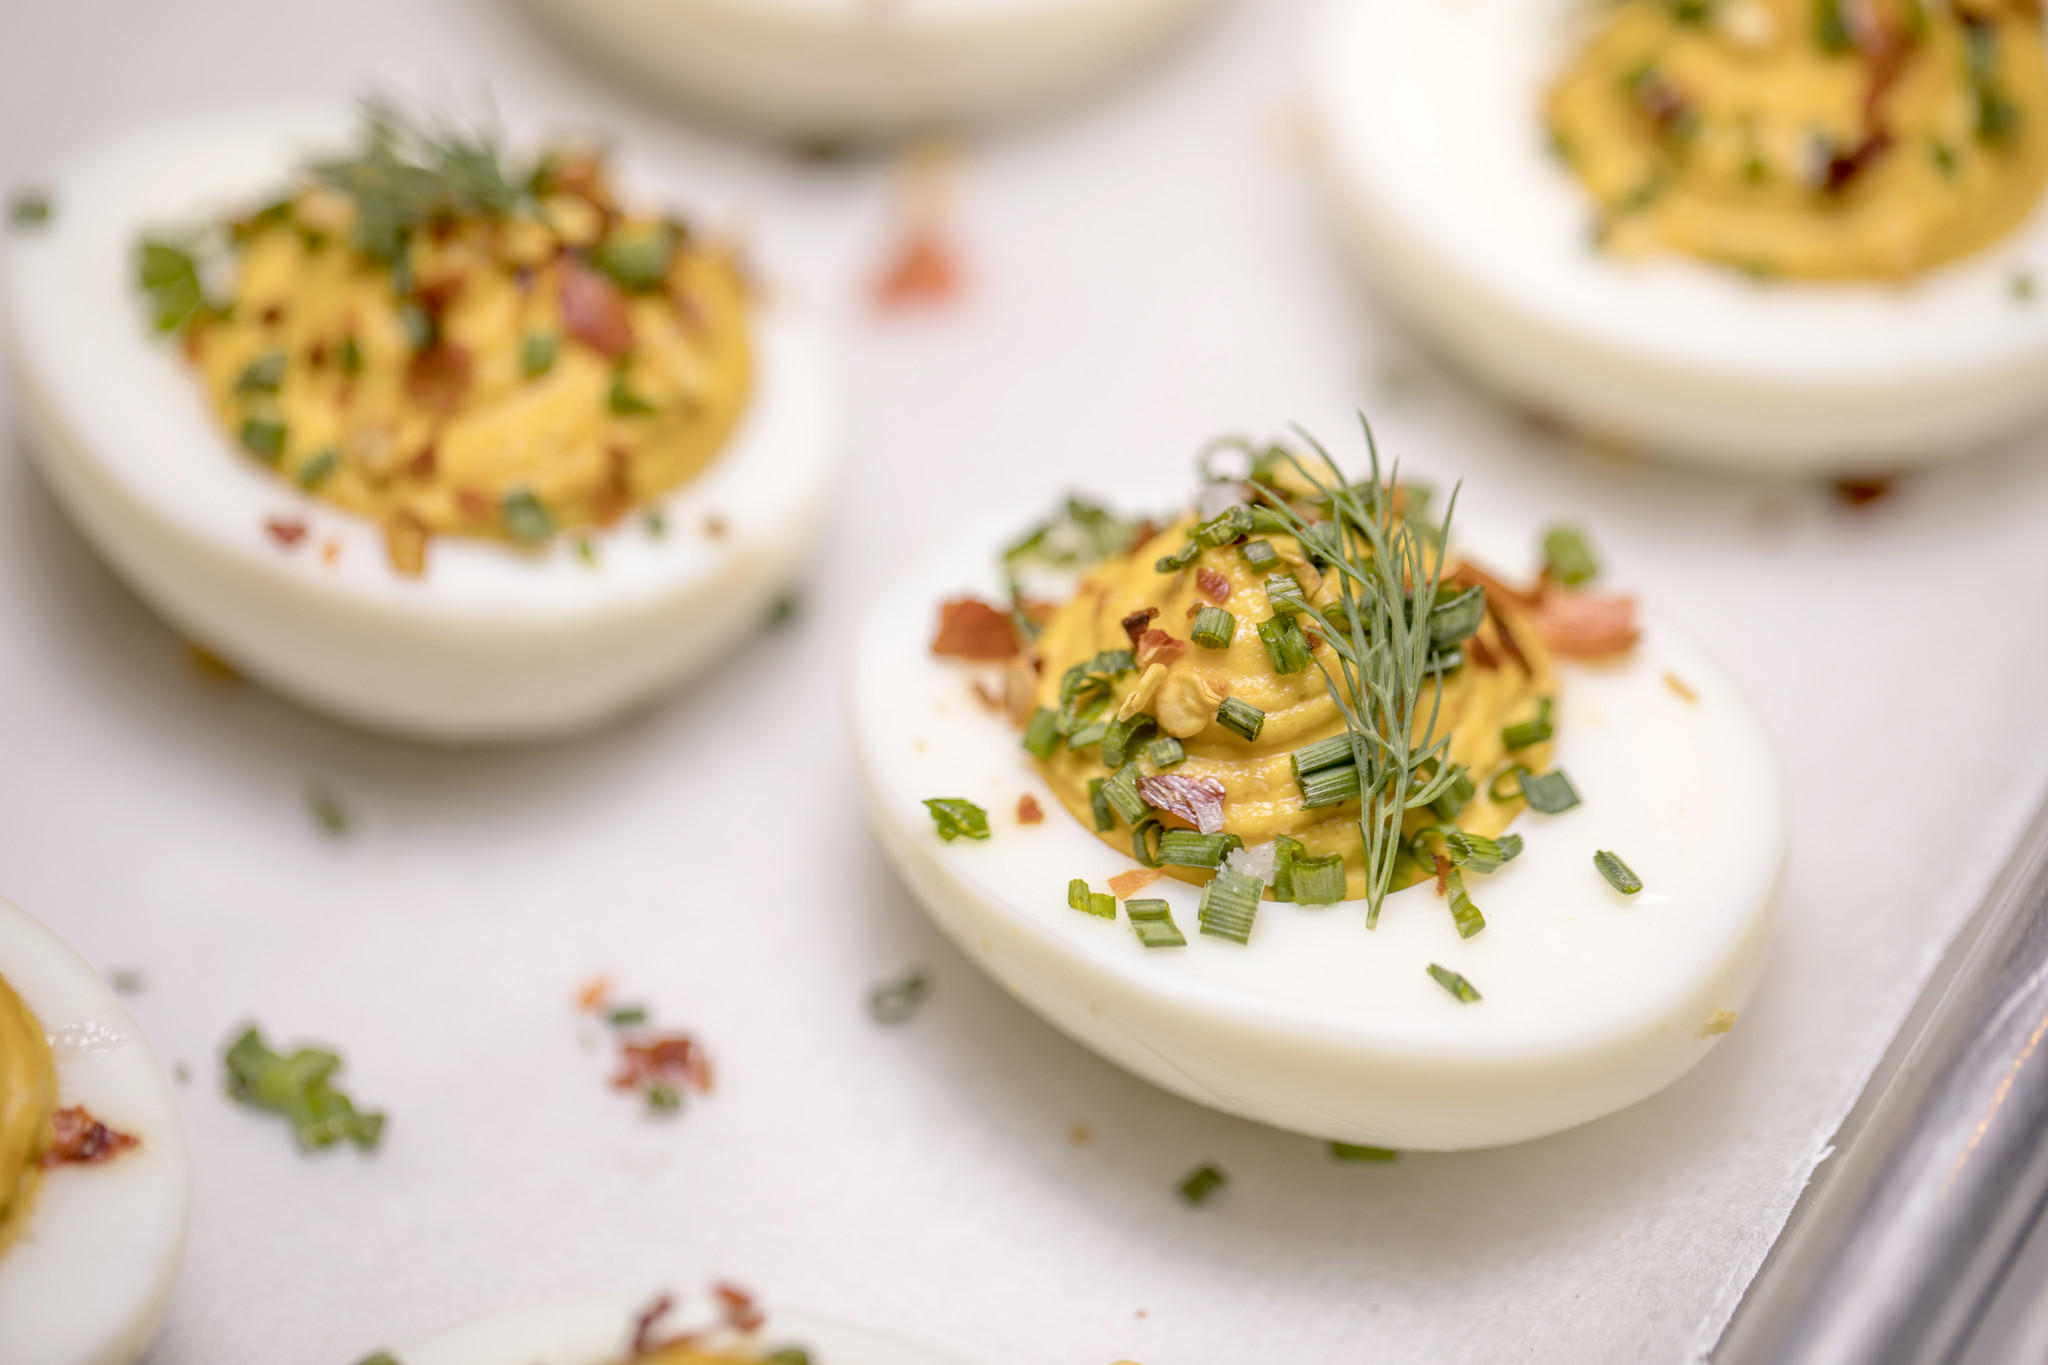 Recipe deviled eggs with chile flake and sea salt for Table 52 deviled eggs recipe